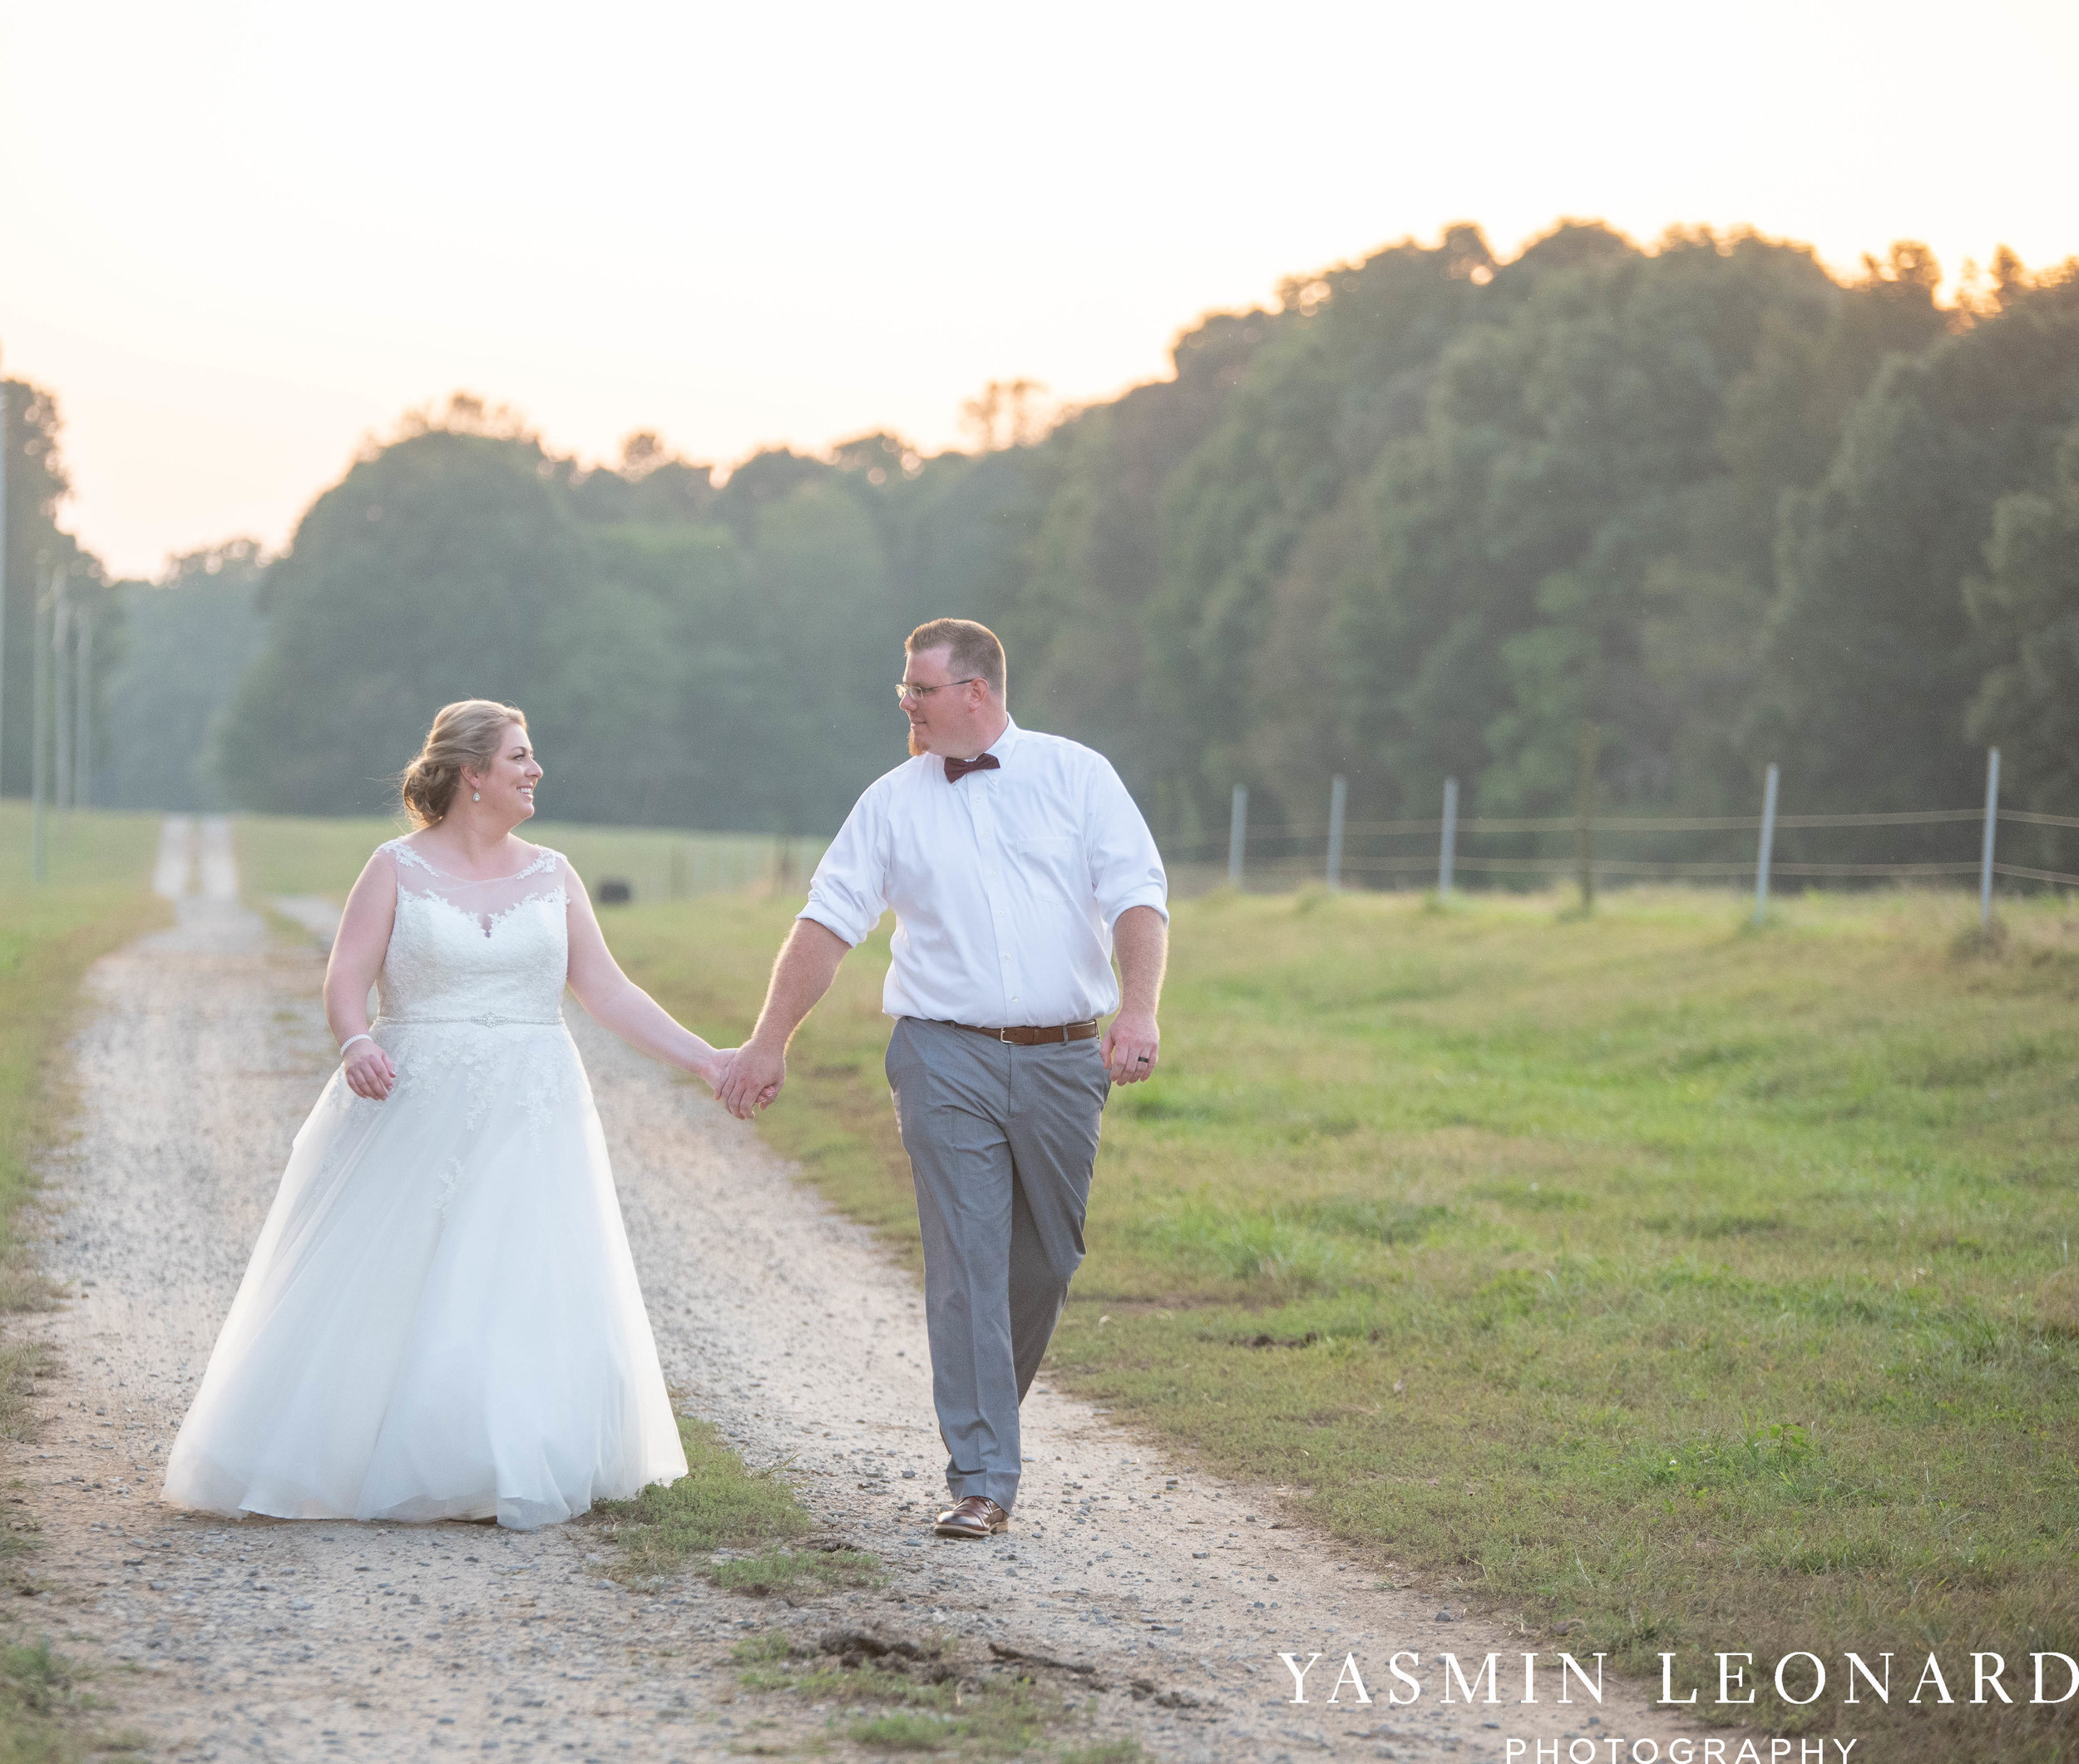 Danner Farms - NC Wedding Venues - NC Barns - Statesville NC - NC Wedding Photographer - High Point Wedding Photographer - Yasmin Leonard Photography-55.jpg